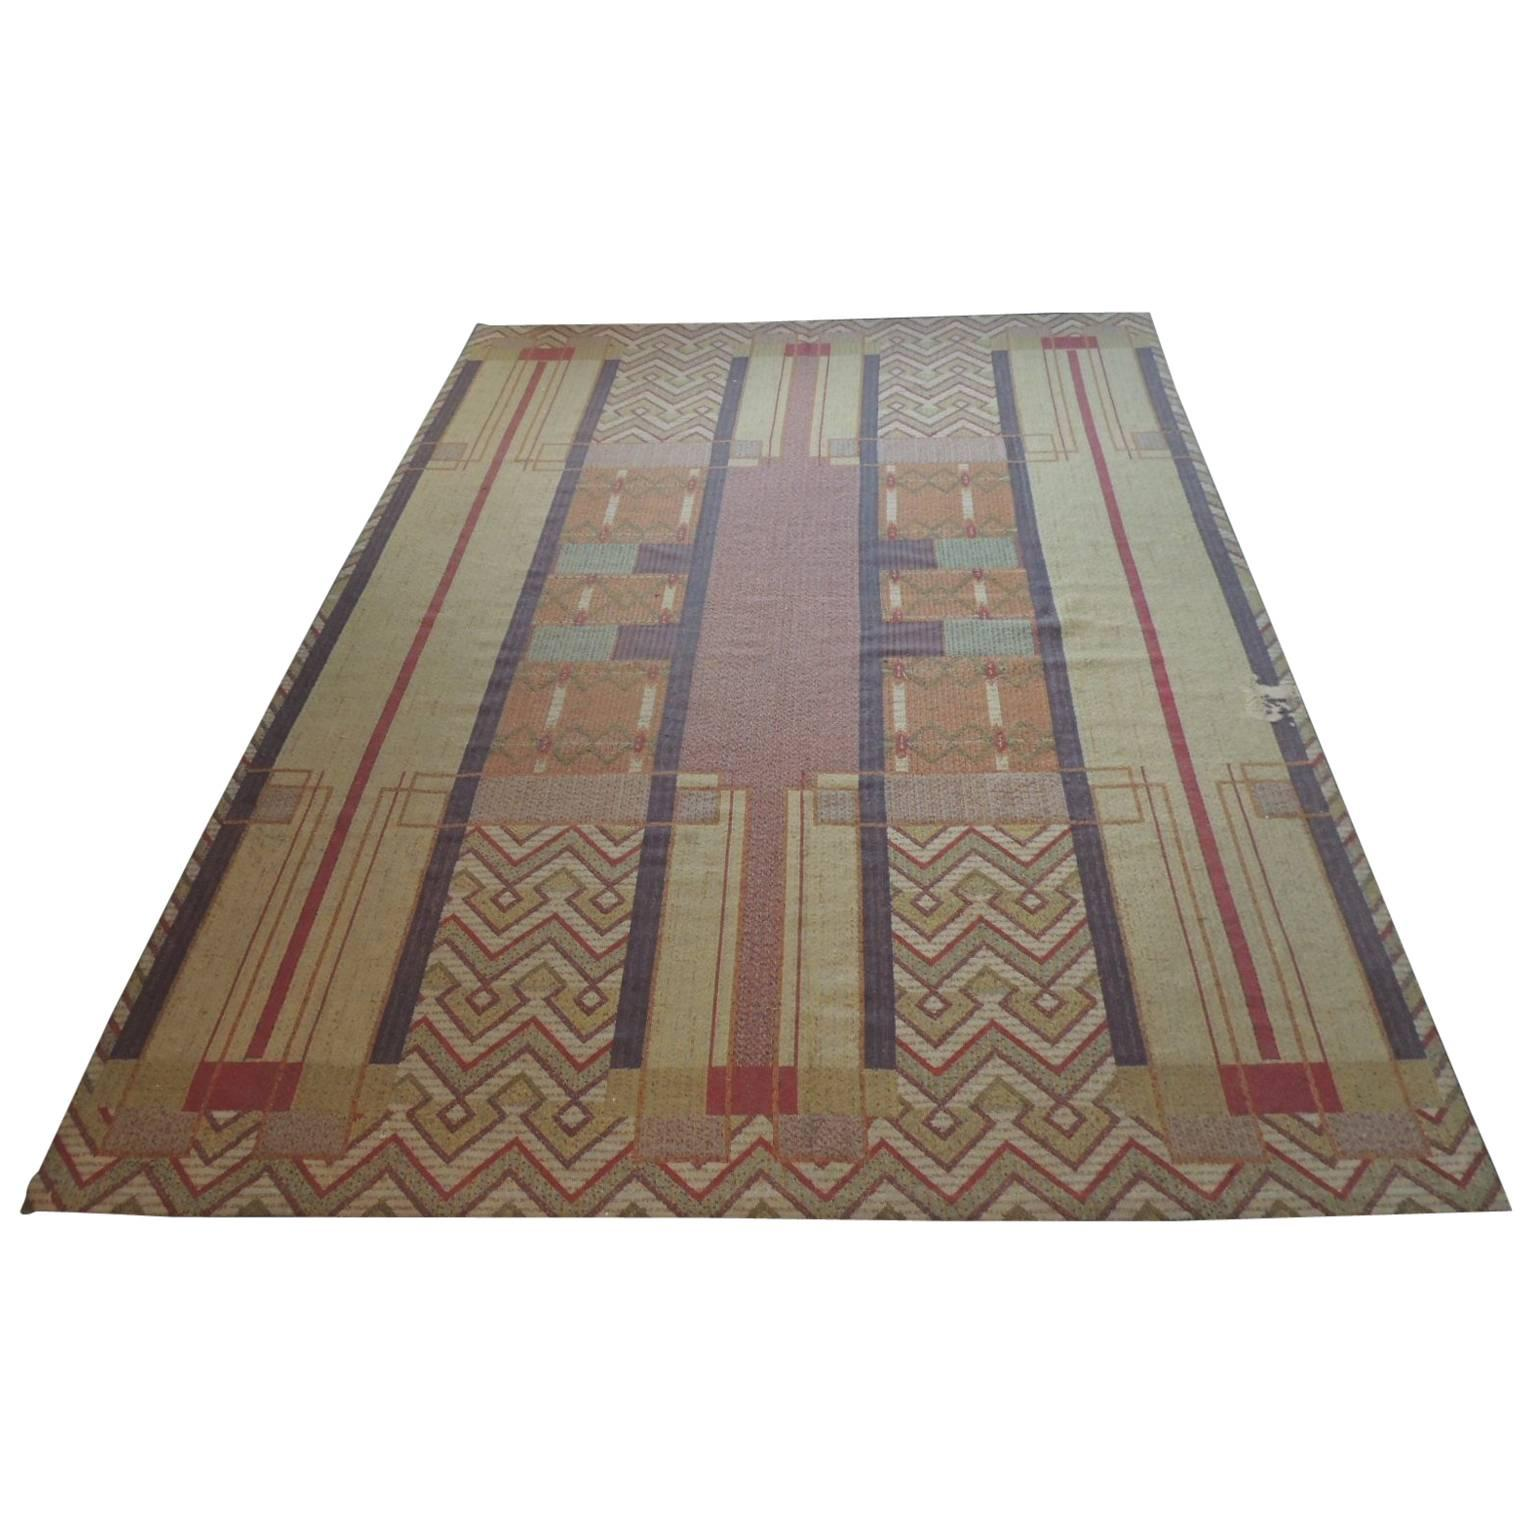 Frank Lloyd Wright Arts And Crafts Inspired Rug Made By Michaelian Kohlberg For At 1stdibs